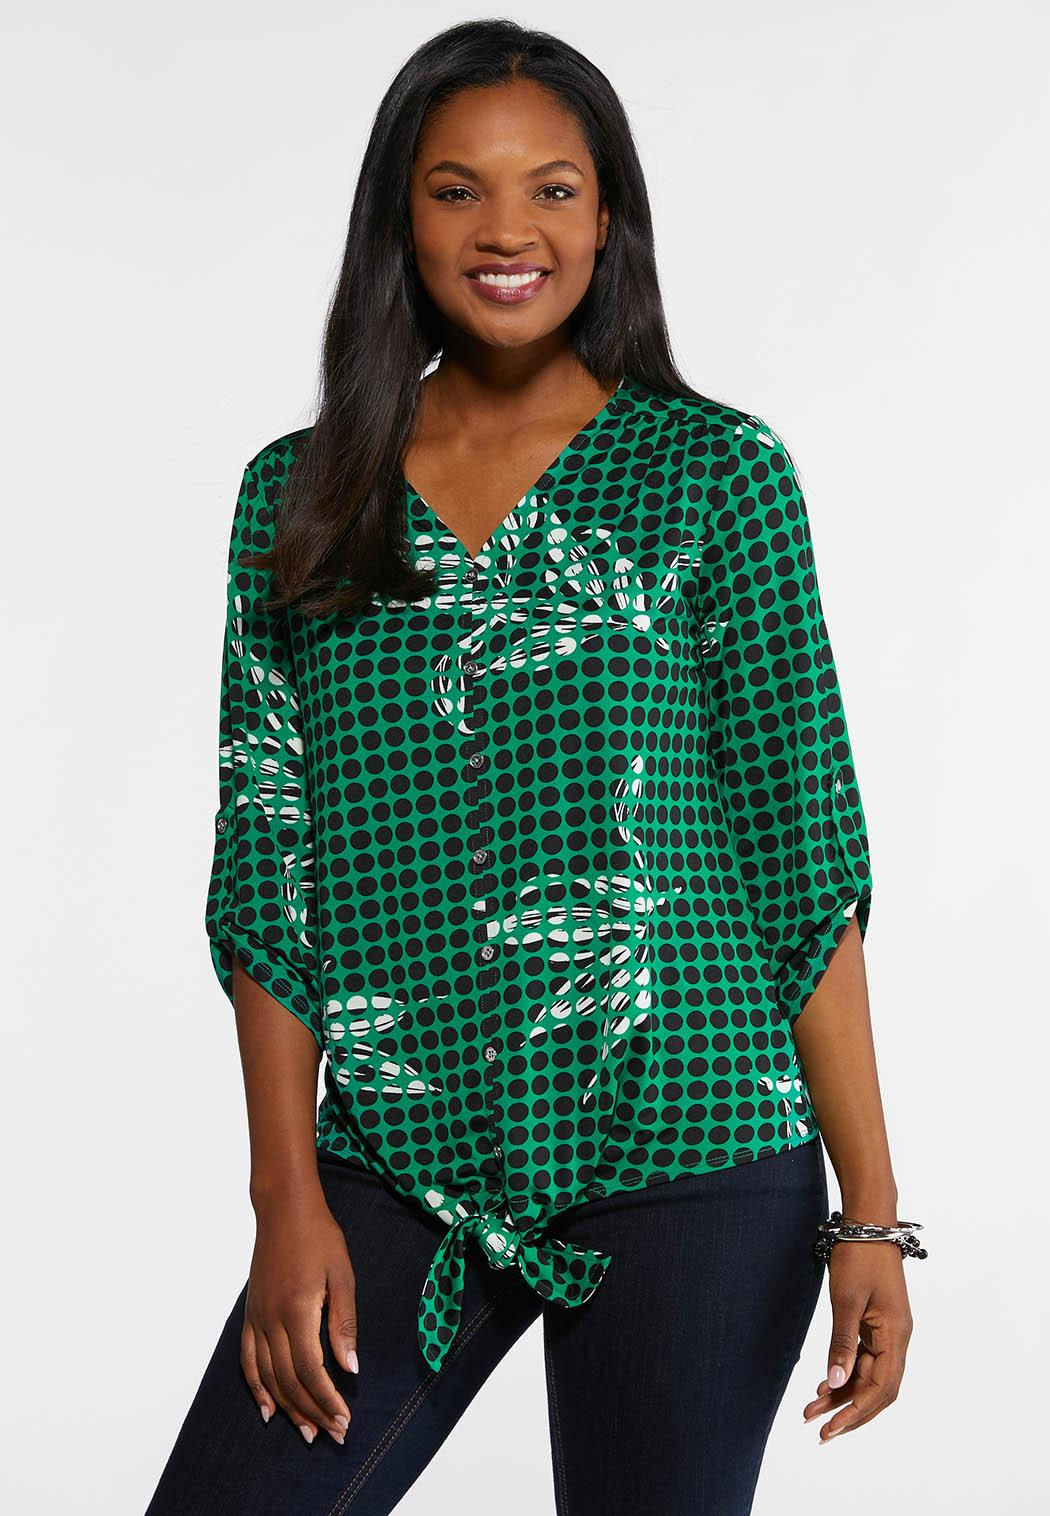 daa3e8bb4459d Green Dotted Tie Front Top Tees   Knit Tops Cato Fashions